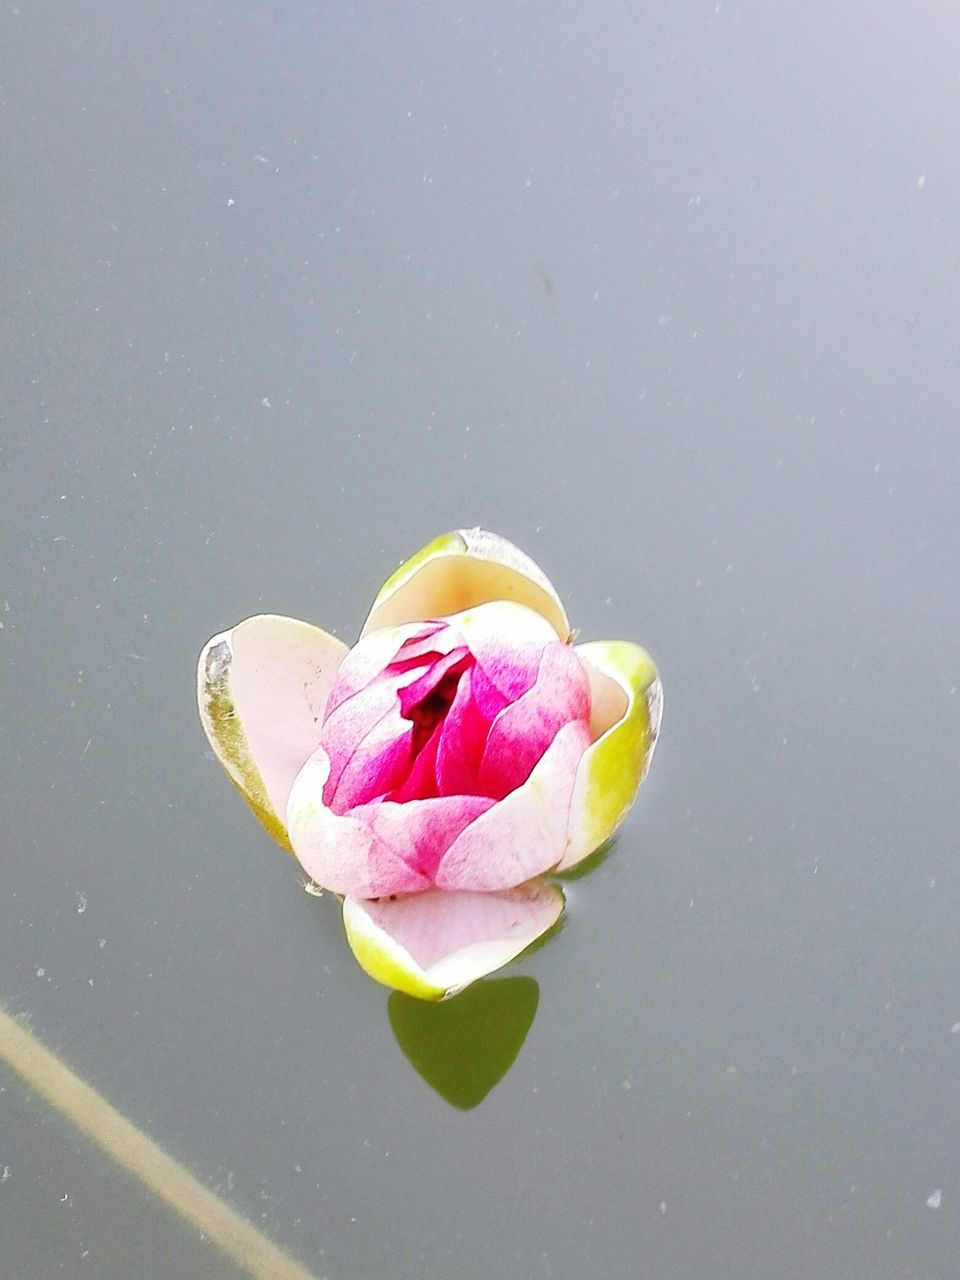 flower, petal, fragility, beauty in nature, nature, freshness, flower head, pink color, no people, studio shot, rose - flower, leaf, water, plant, close-up, lotus, growth, lotus water lily, blooming, outdoors, day